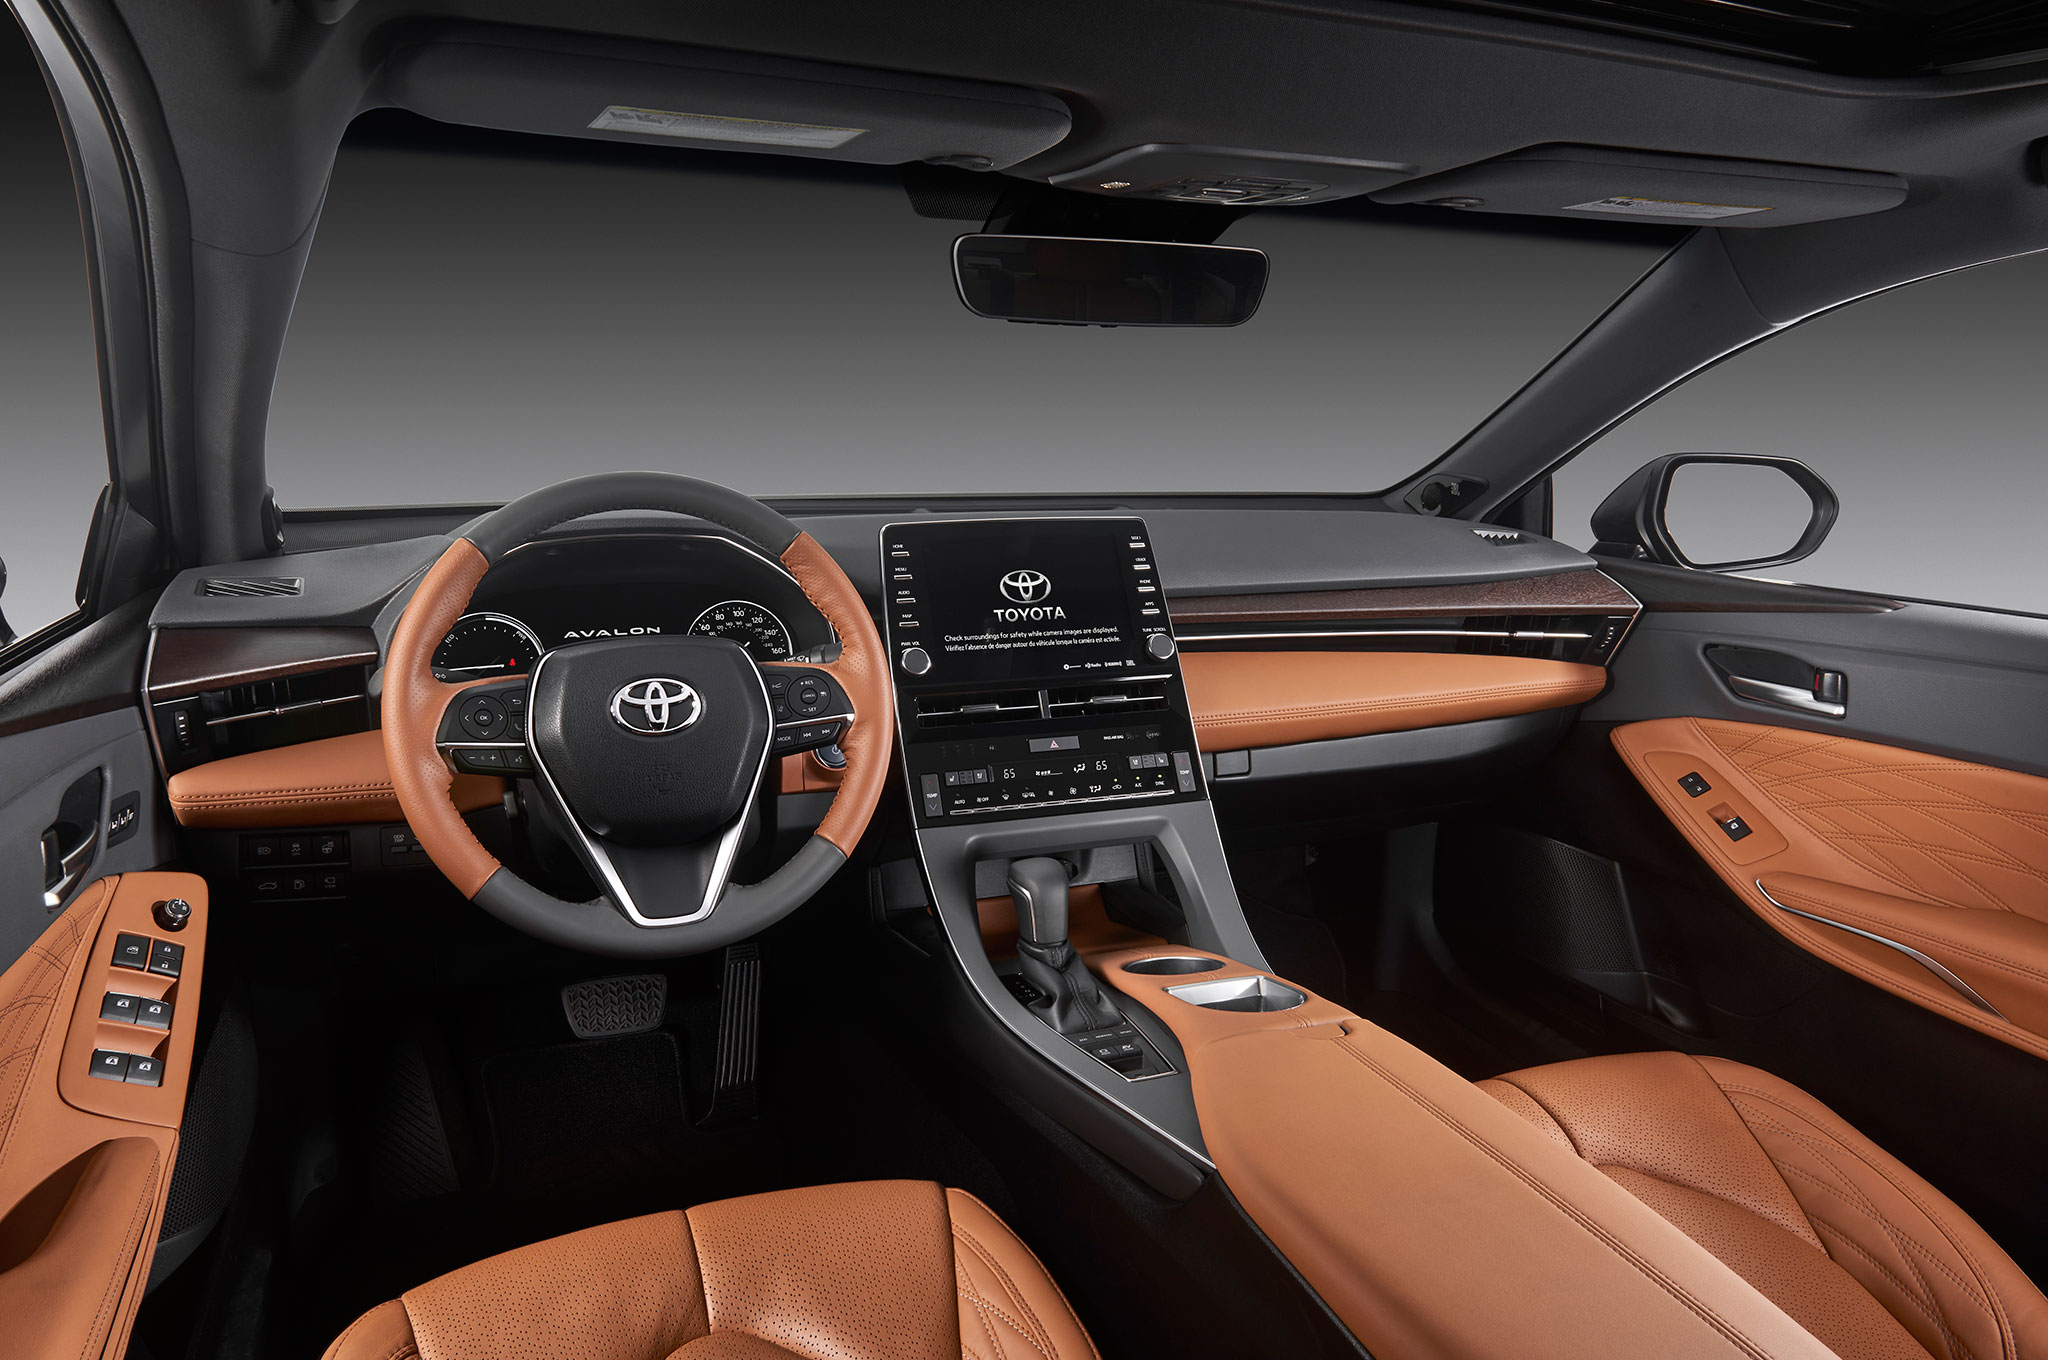 all new camry 2019 interior kijang innova diesel 2017 toyota avalon debuts in detroit automobile magazine inside went to great lengths separate the from smaller a floating center stack provides sculptural design that